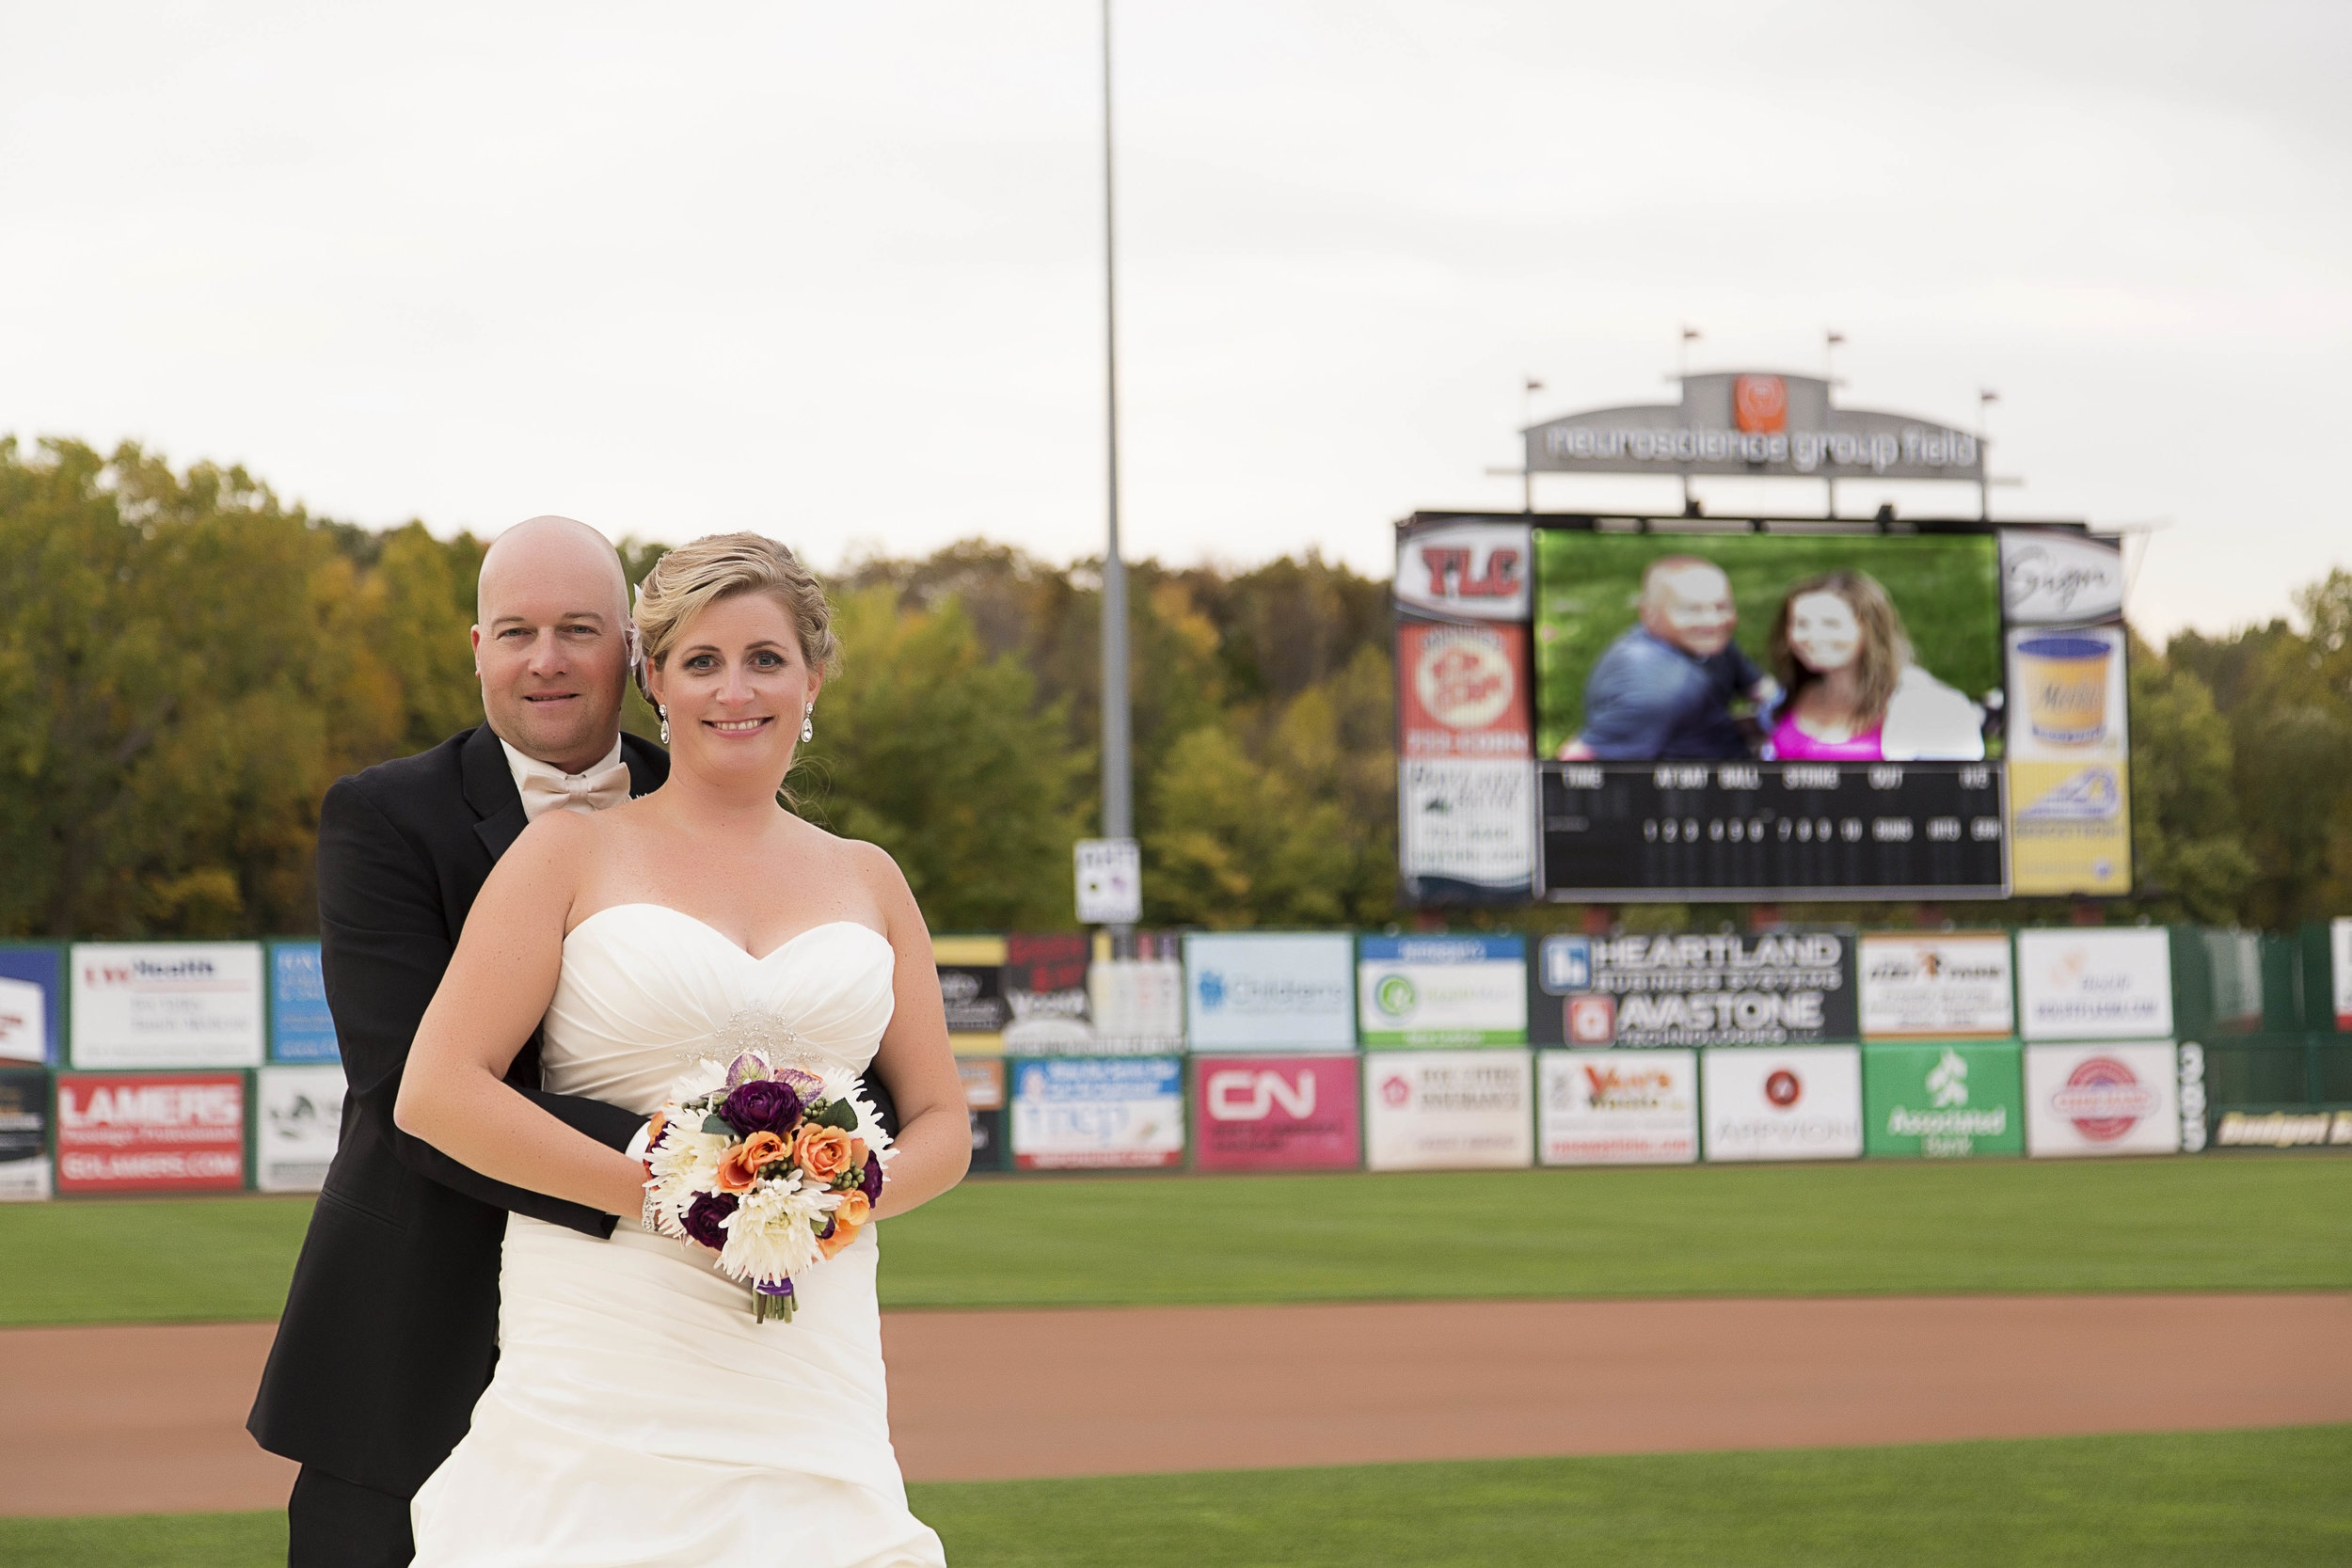 Wedding at the Ballpark